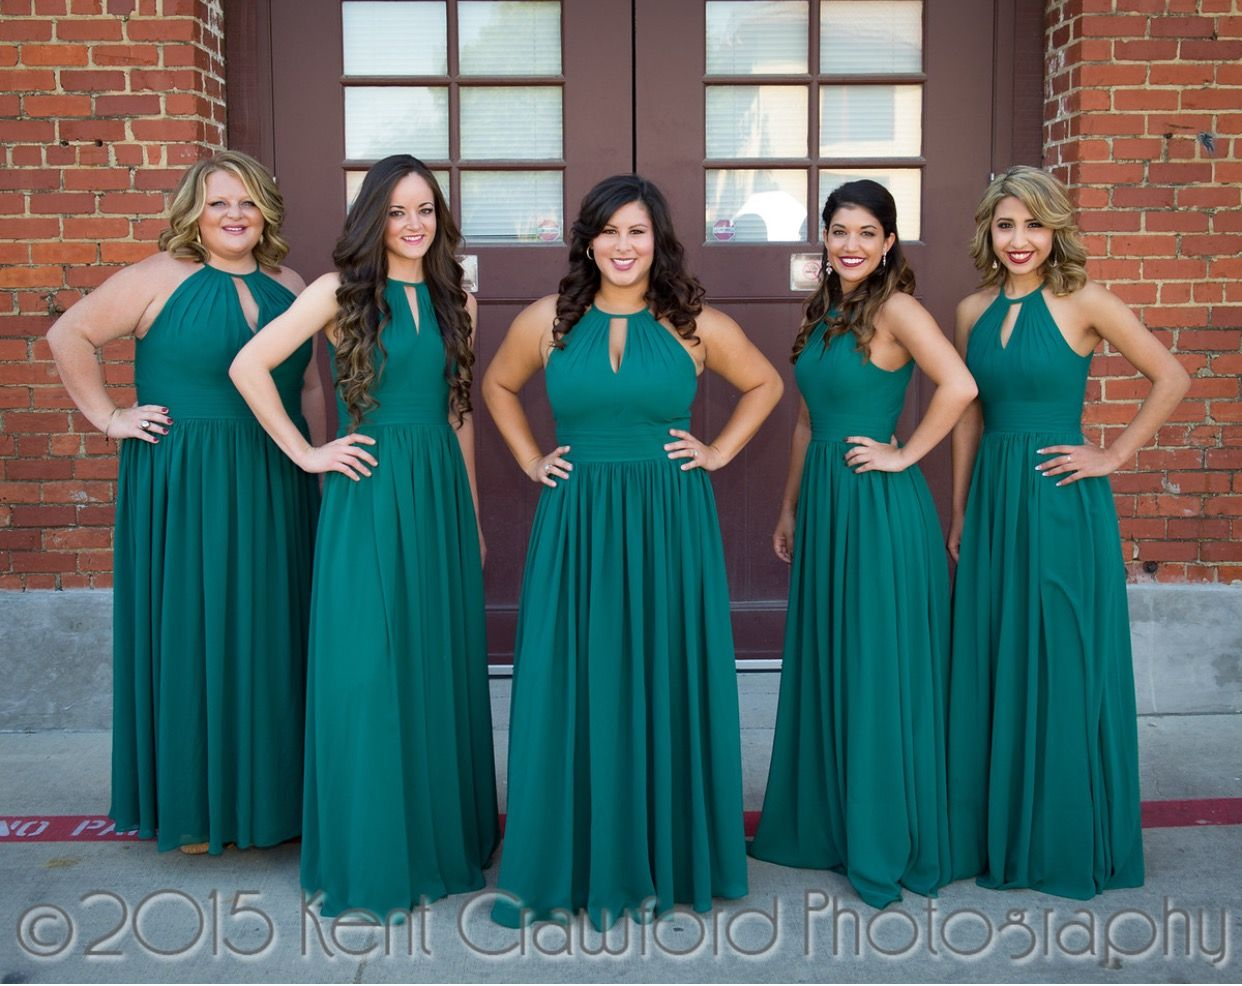 Top 10 colors for fall bridesmaid dresses 2015 dark teal teal cherish bridesmaid dress ombrellifo Images